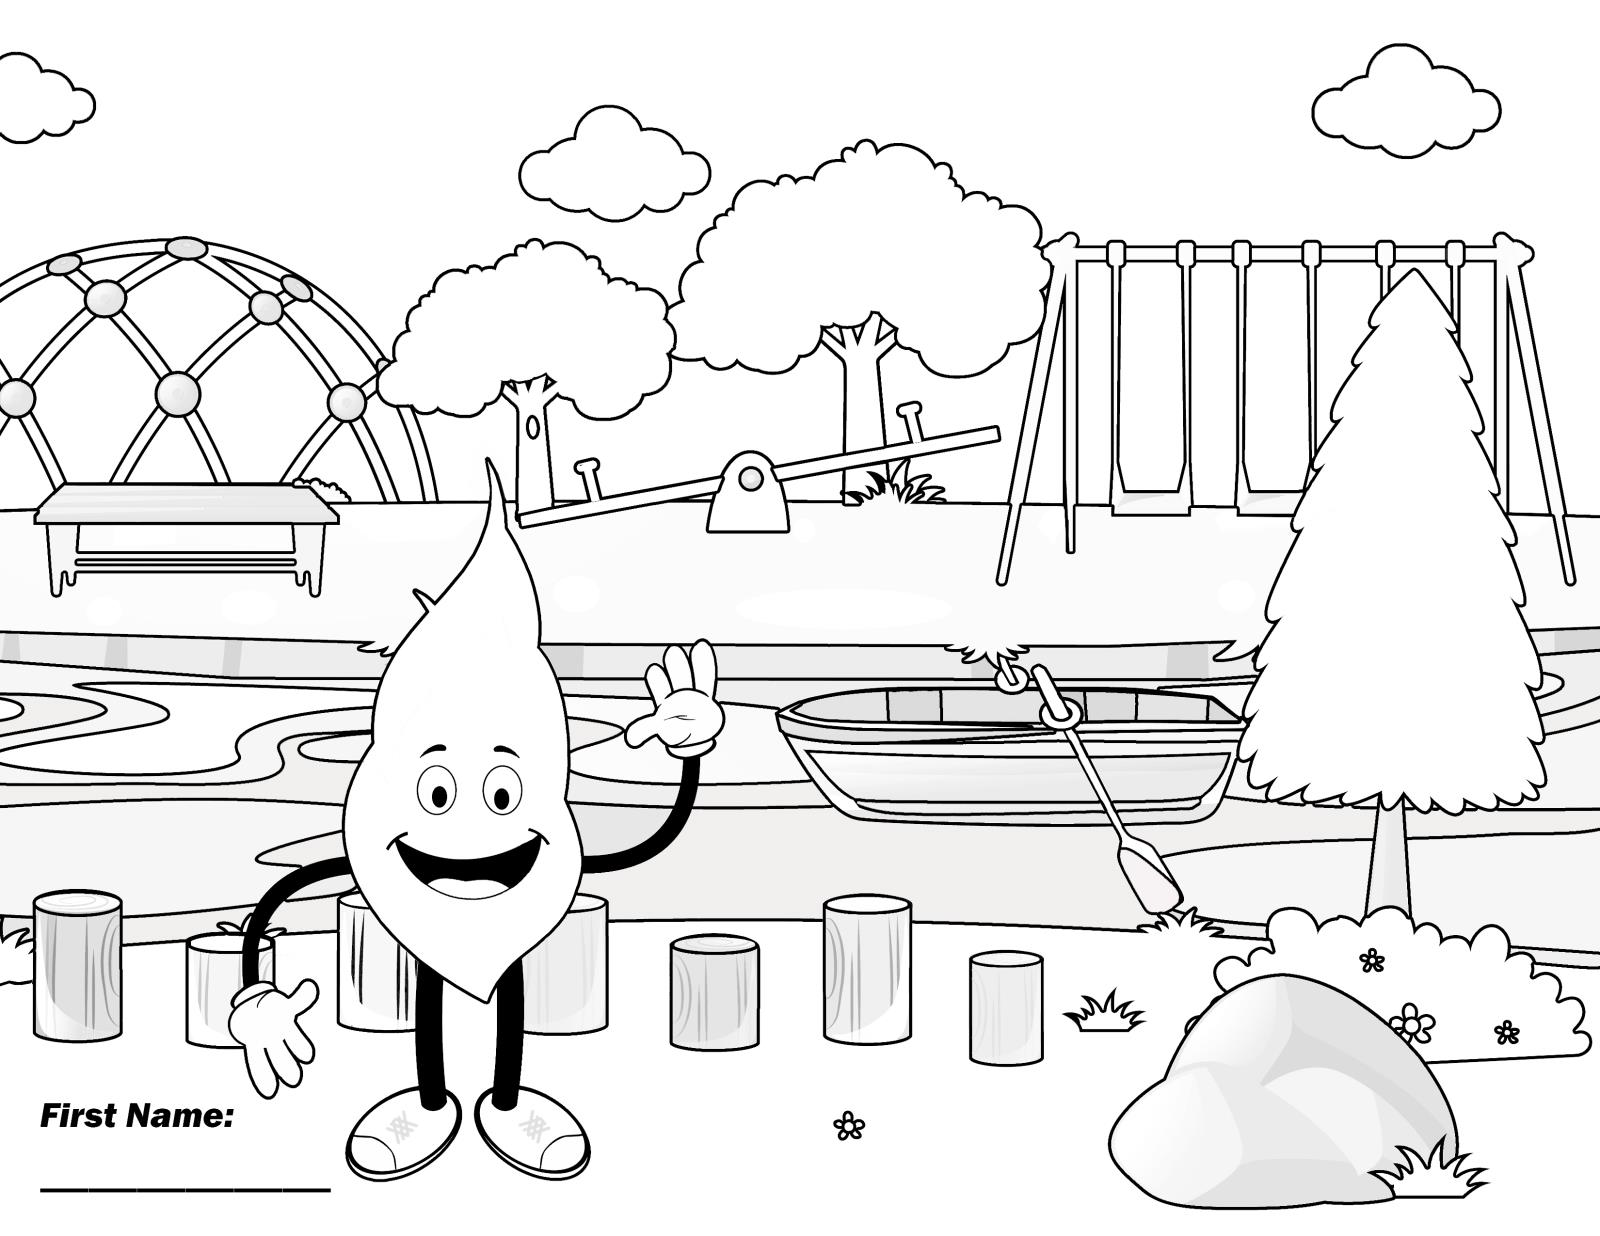 B&W Coloring Page